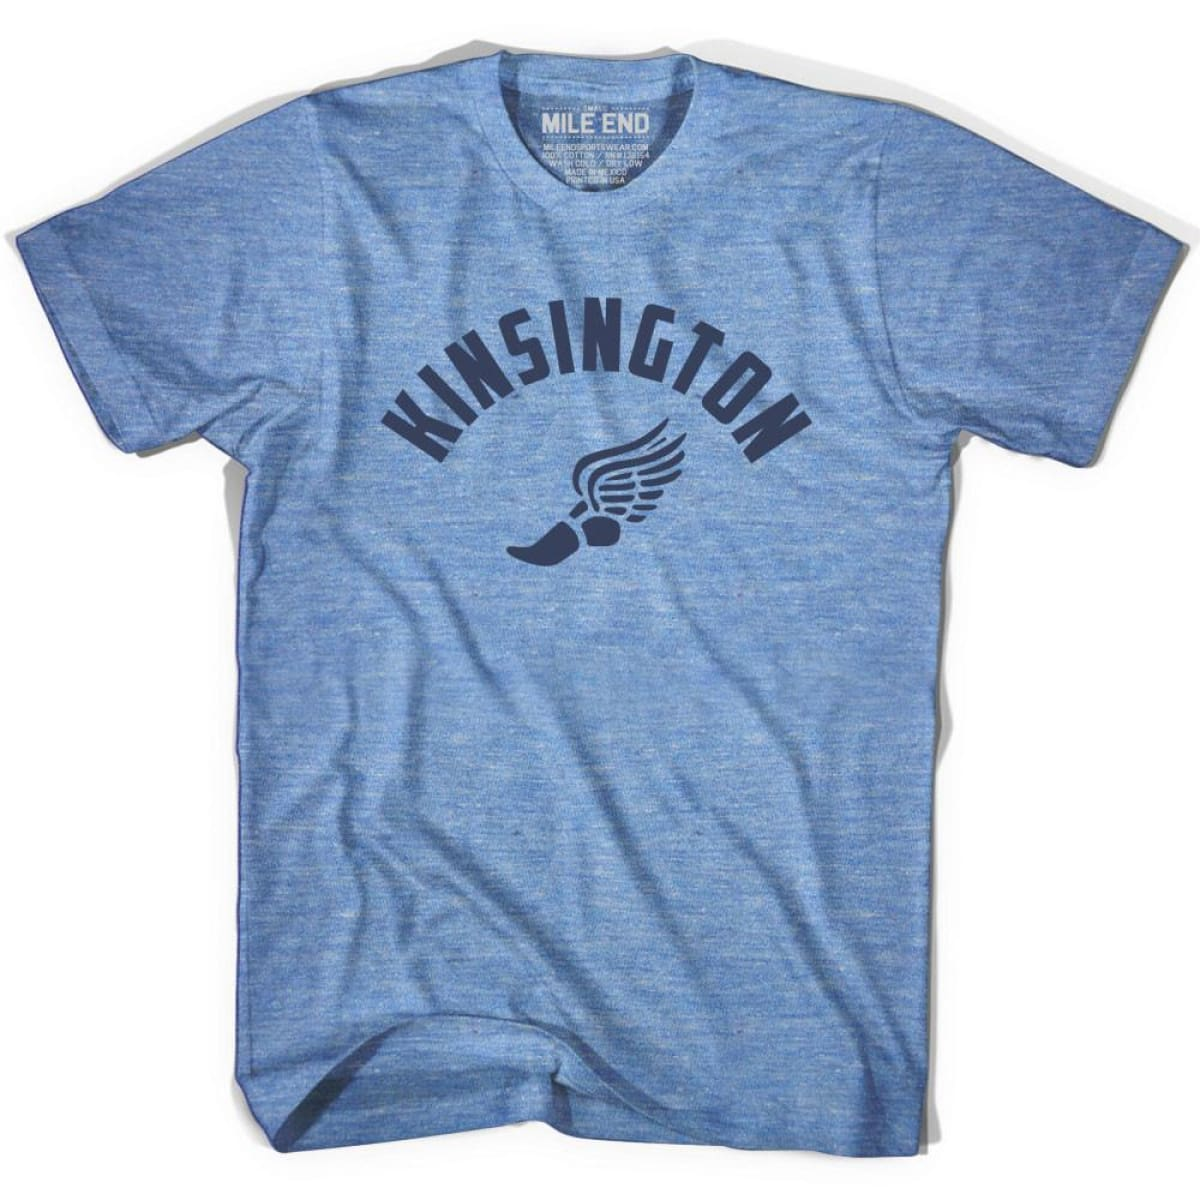 Kinsington Track T-shirt - Athletic Blue / Adult X-Small - Mile End Track